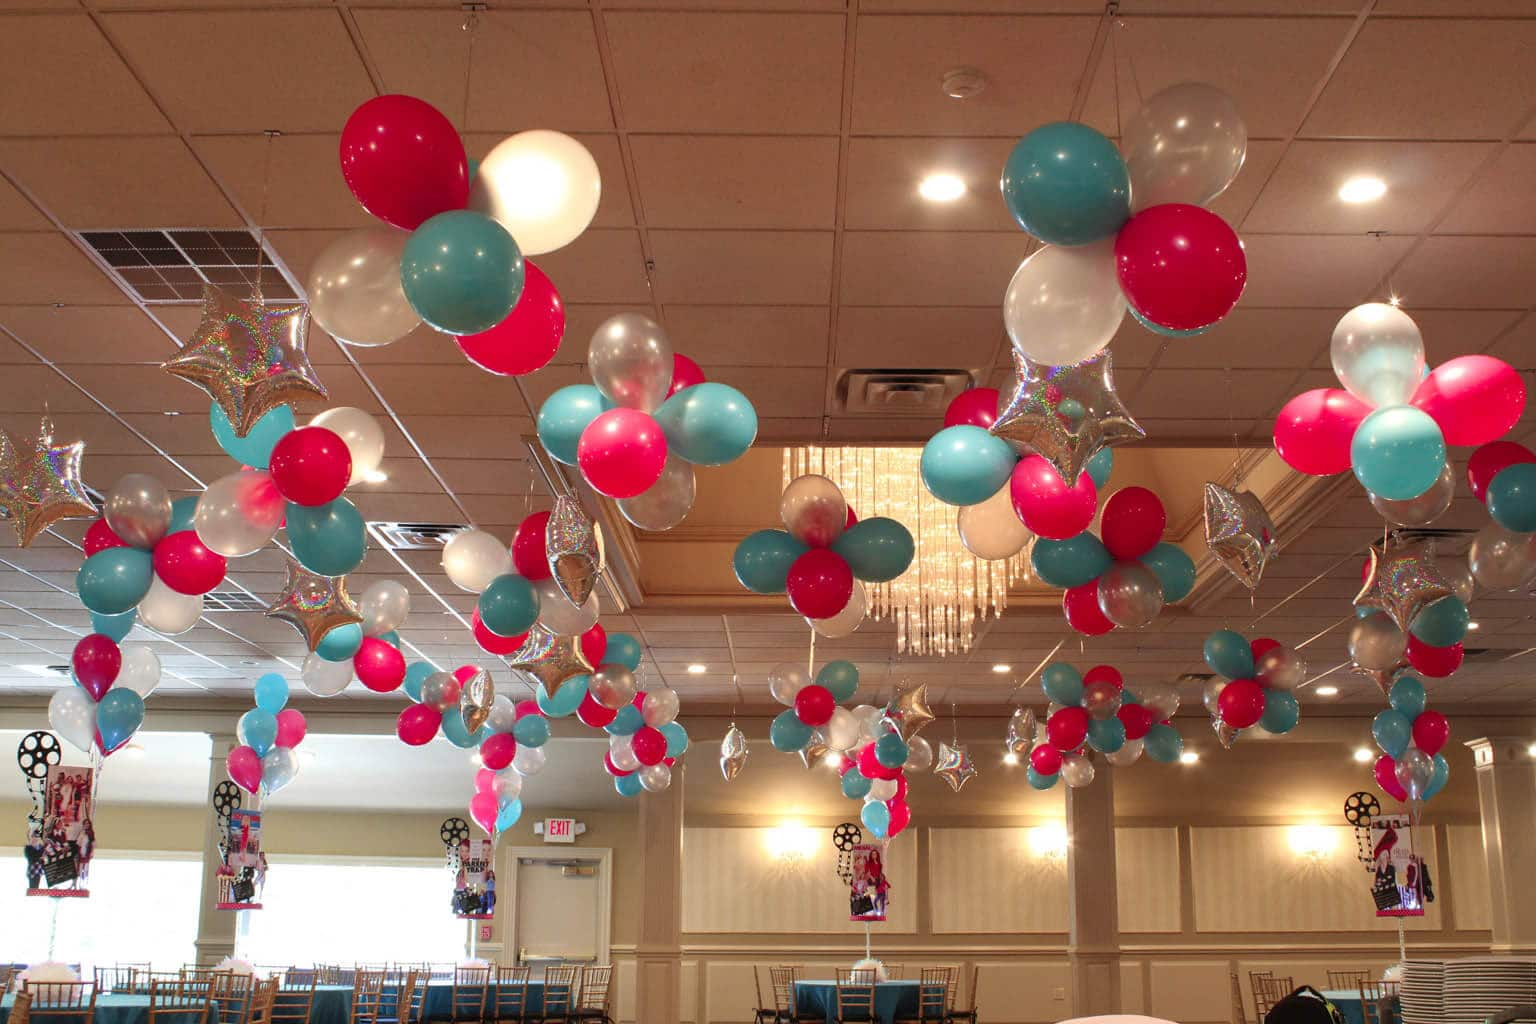 Ceiling d cor balloon artistry for Balloon ceiling decoration